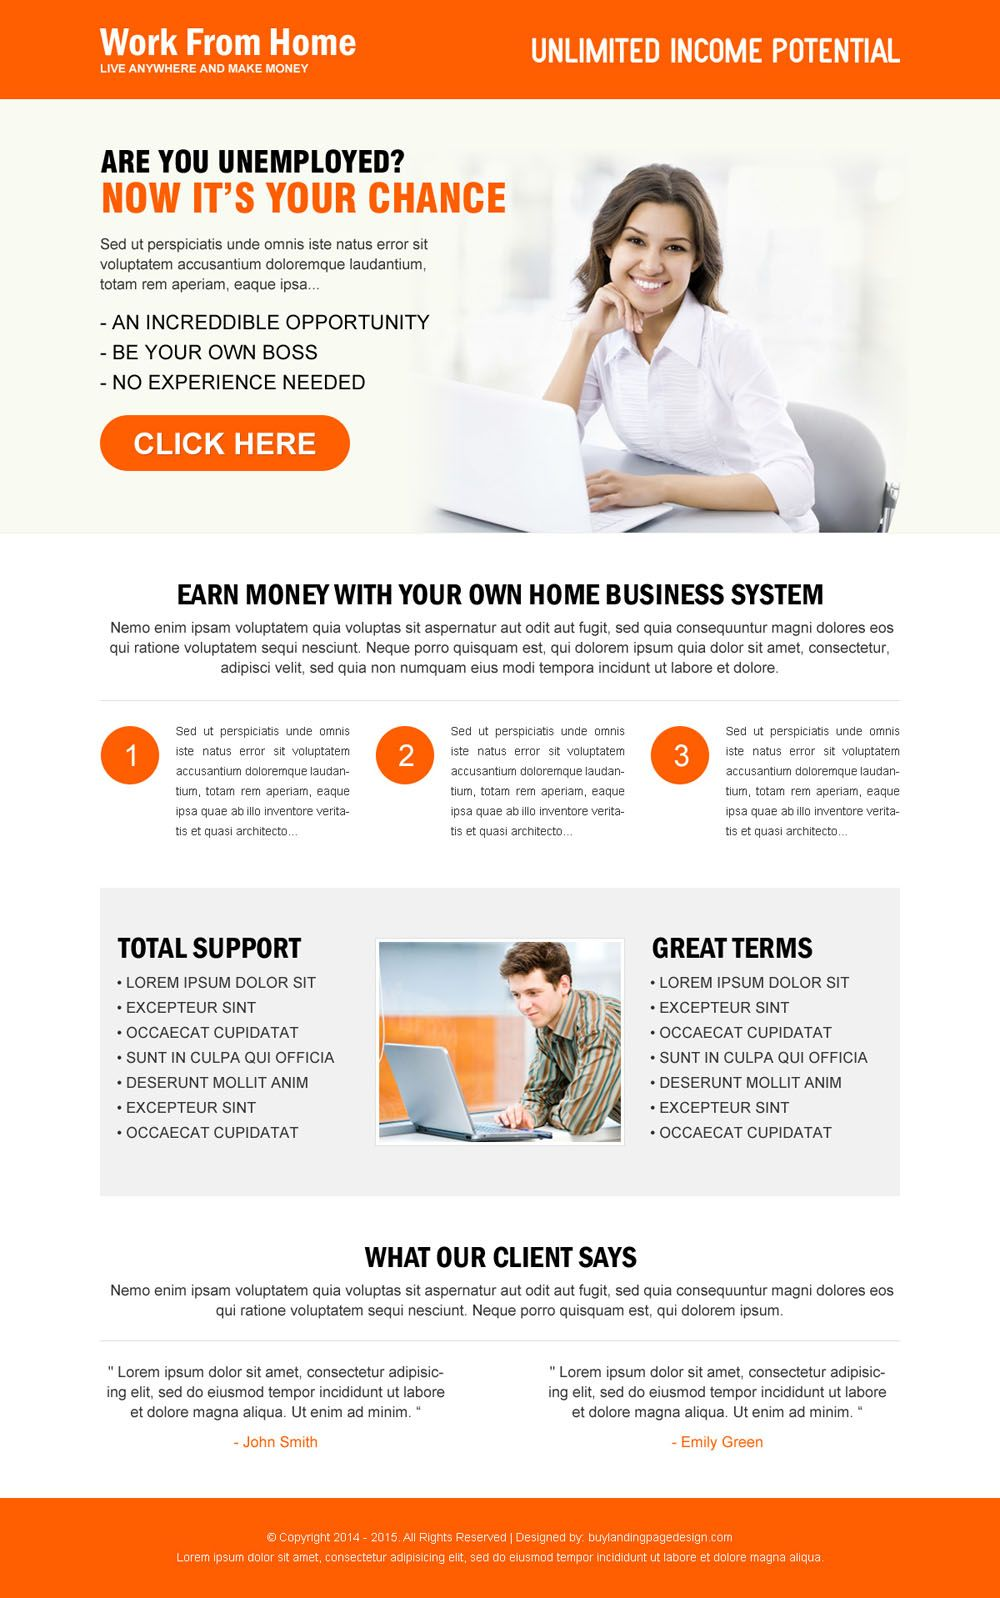 earn money with your own home based system attractive landing page ...